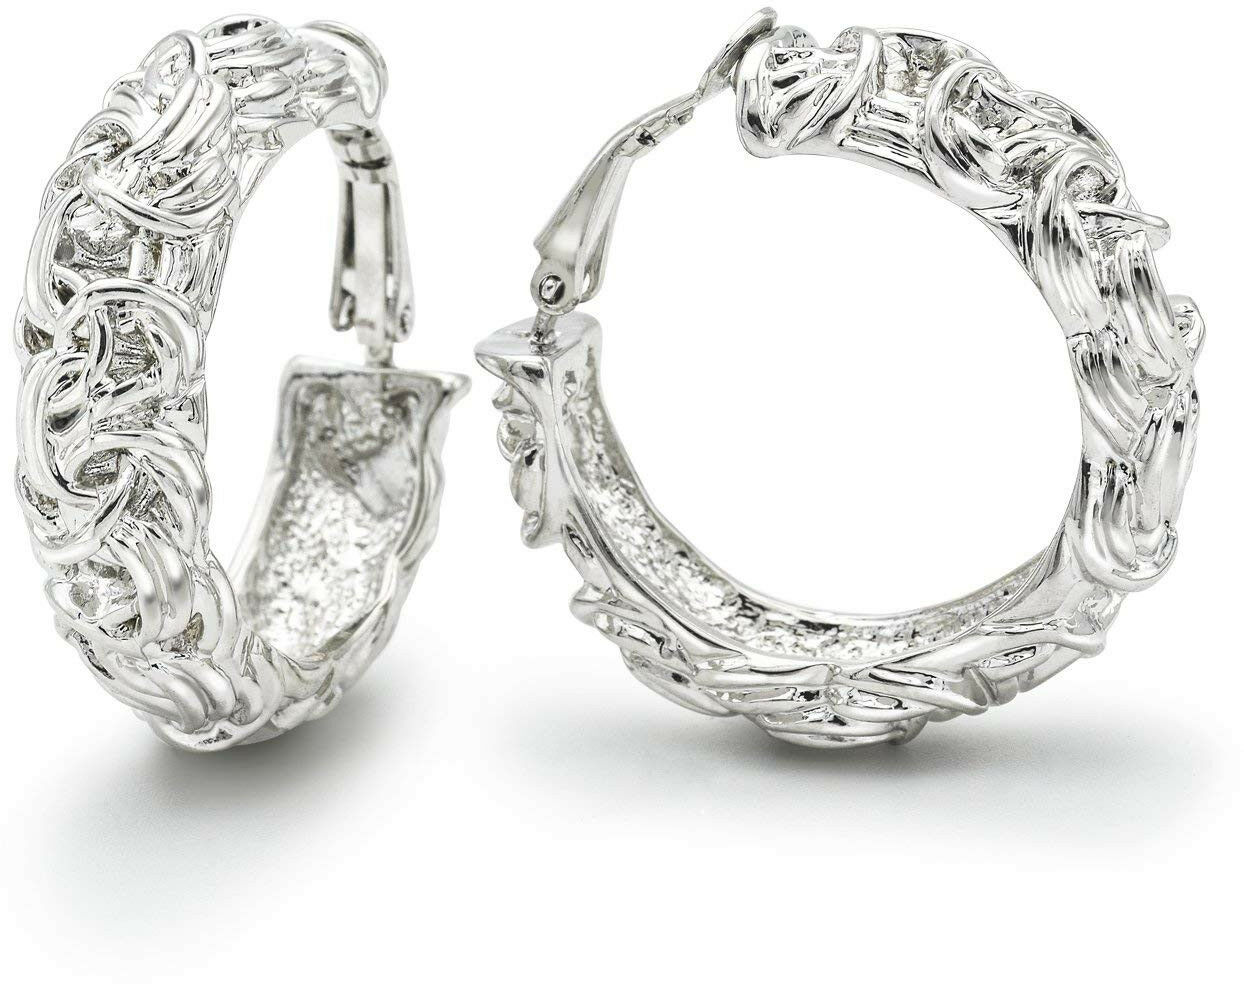 Clip on Earrings Wide Hoop Byzantine Knot Fashion Ornate Rhodium Plated